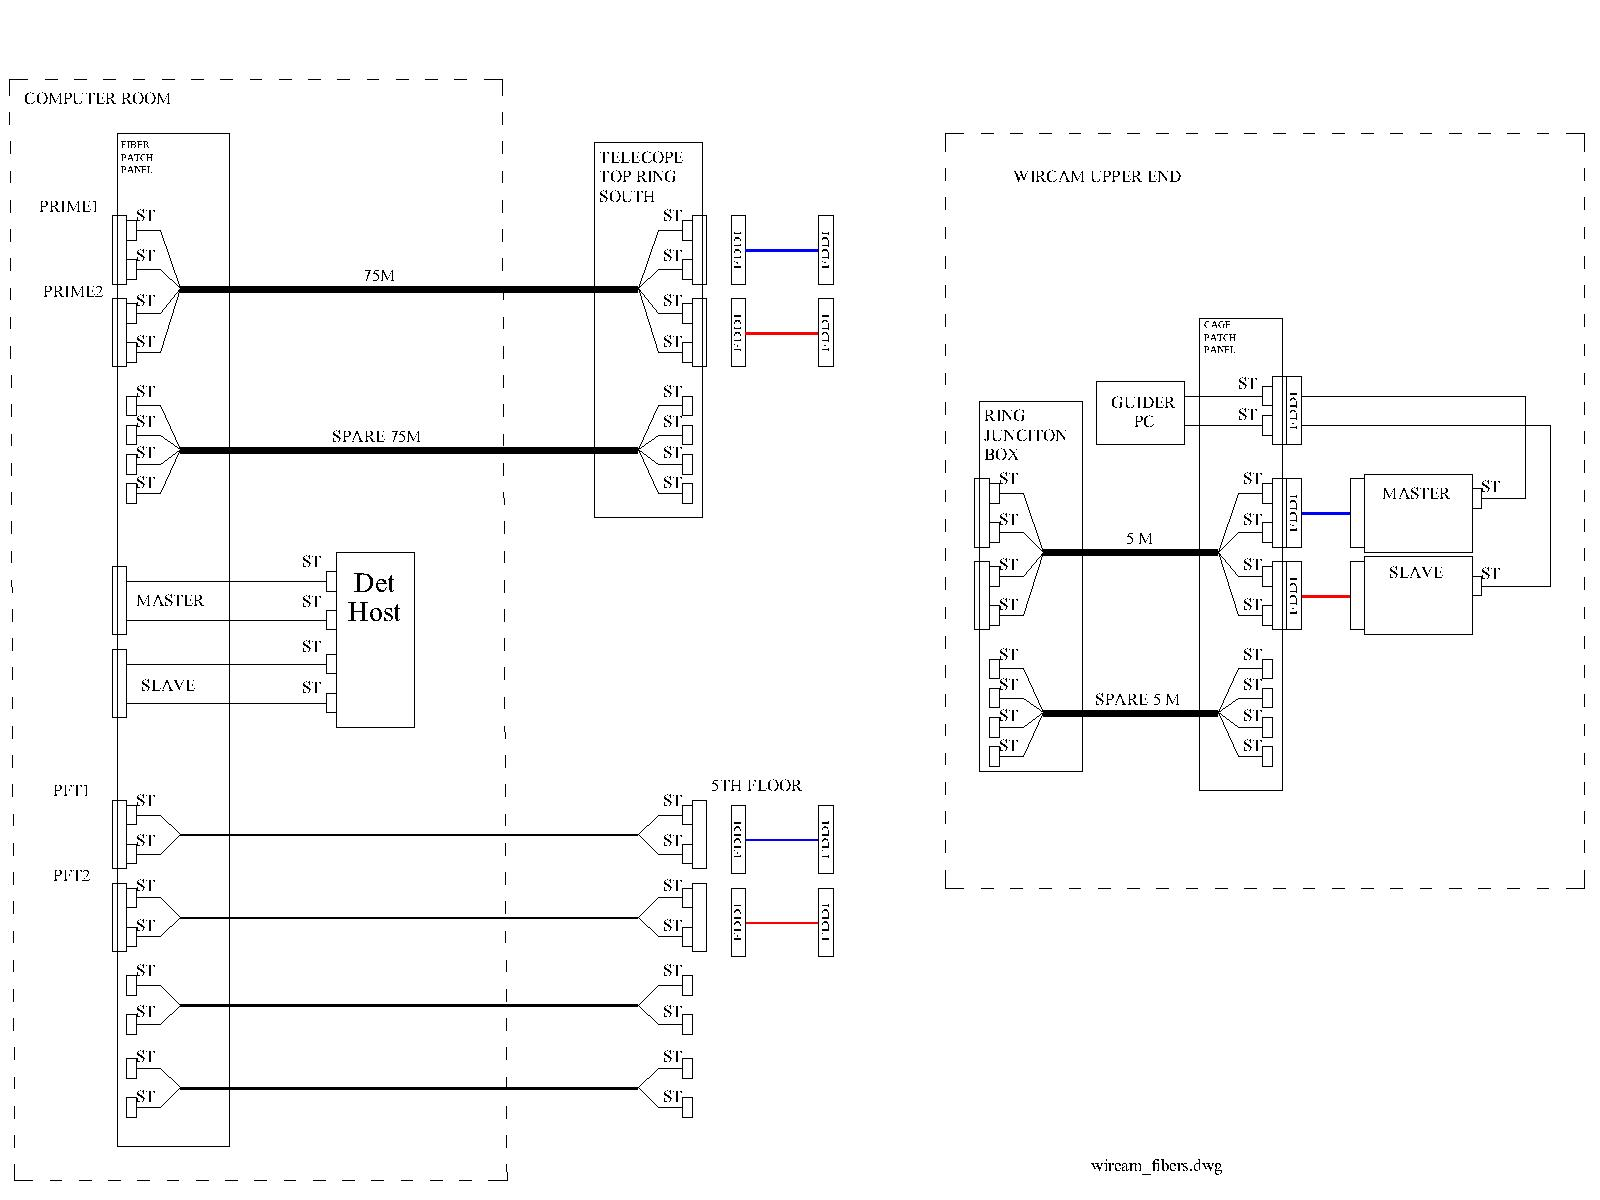 Wircam Environment Wiring Diagram In Autocad Fiber Optics Cabling